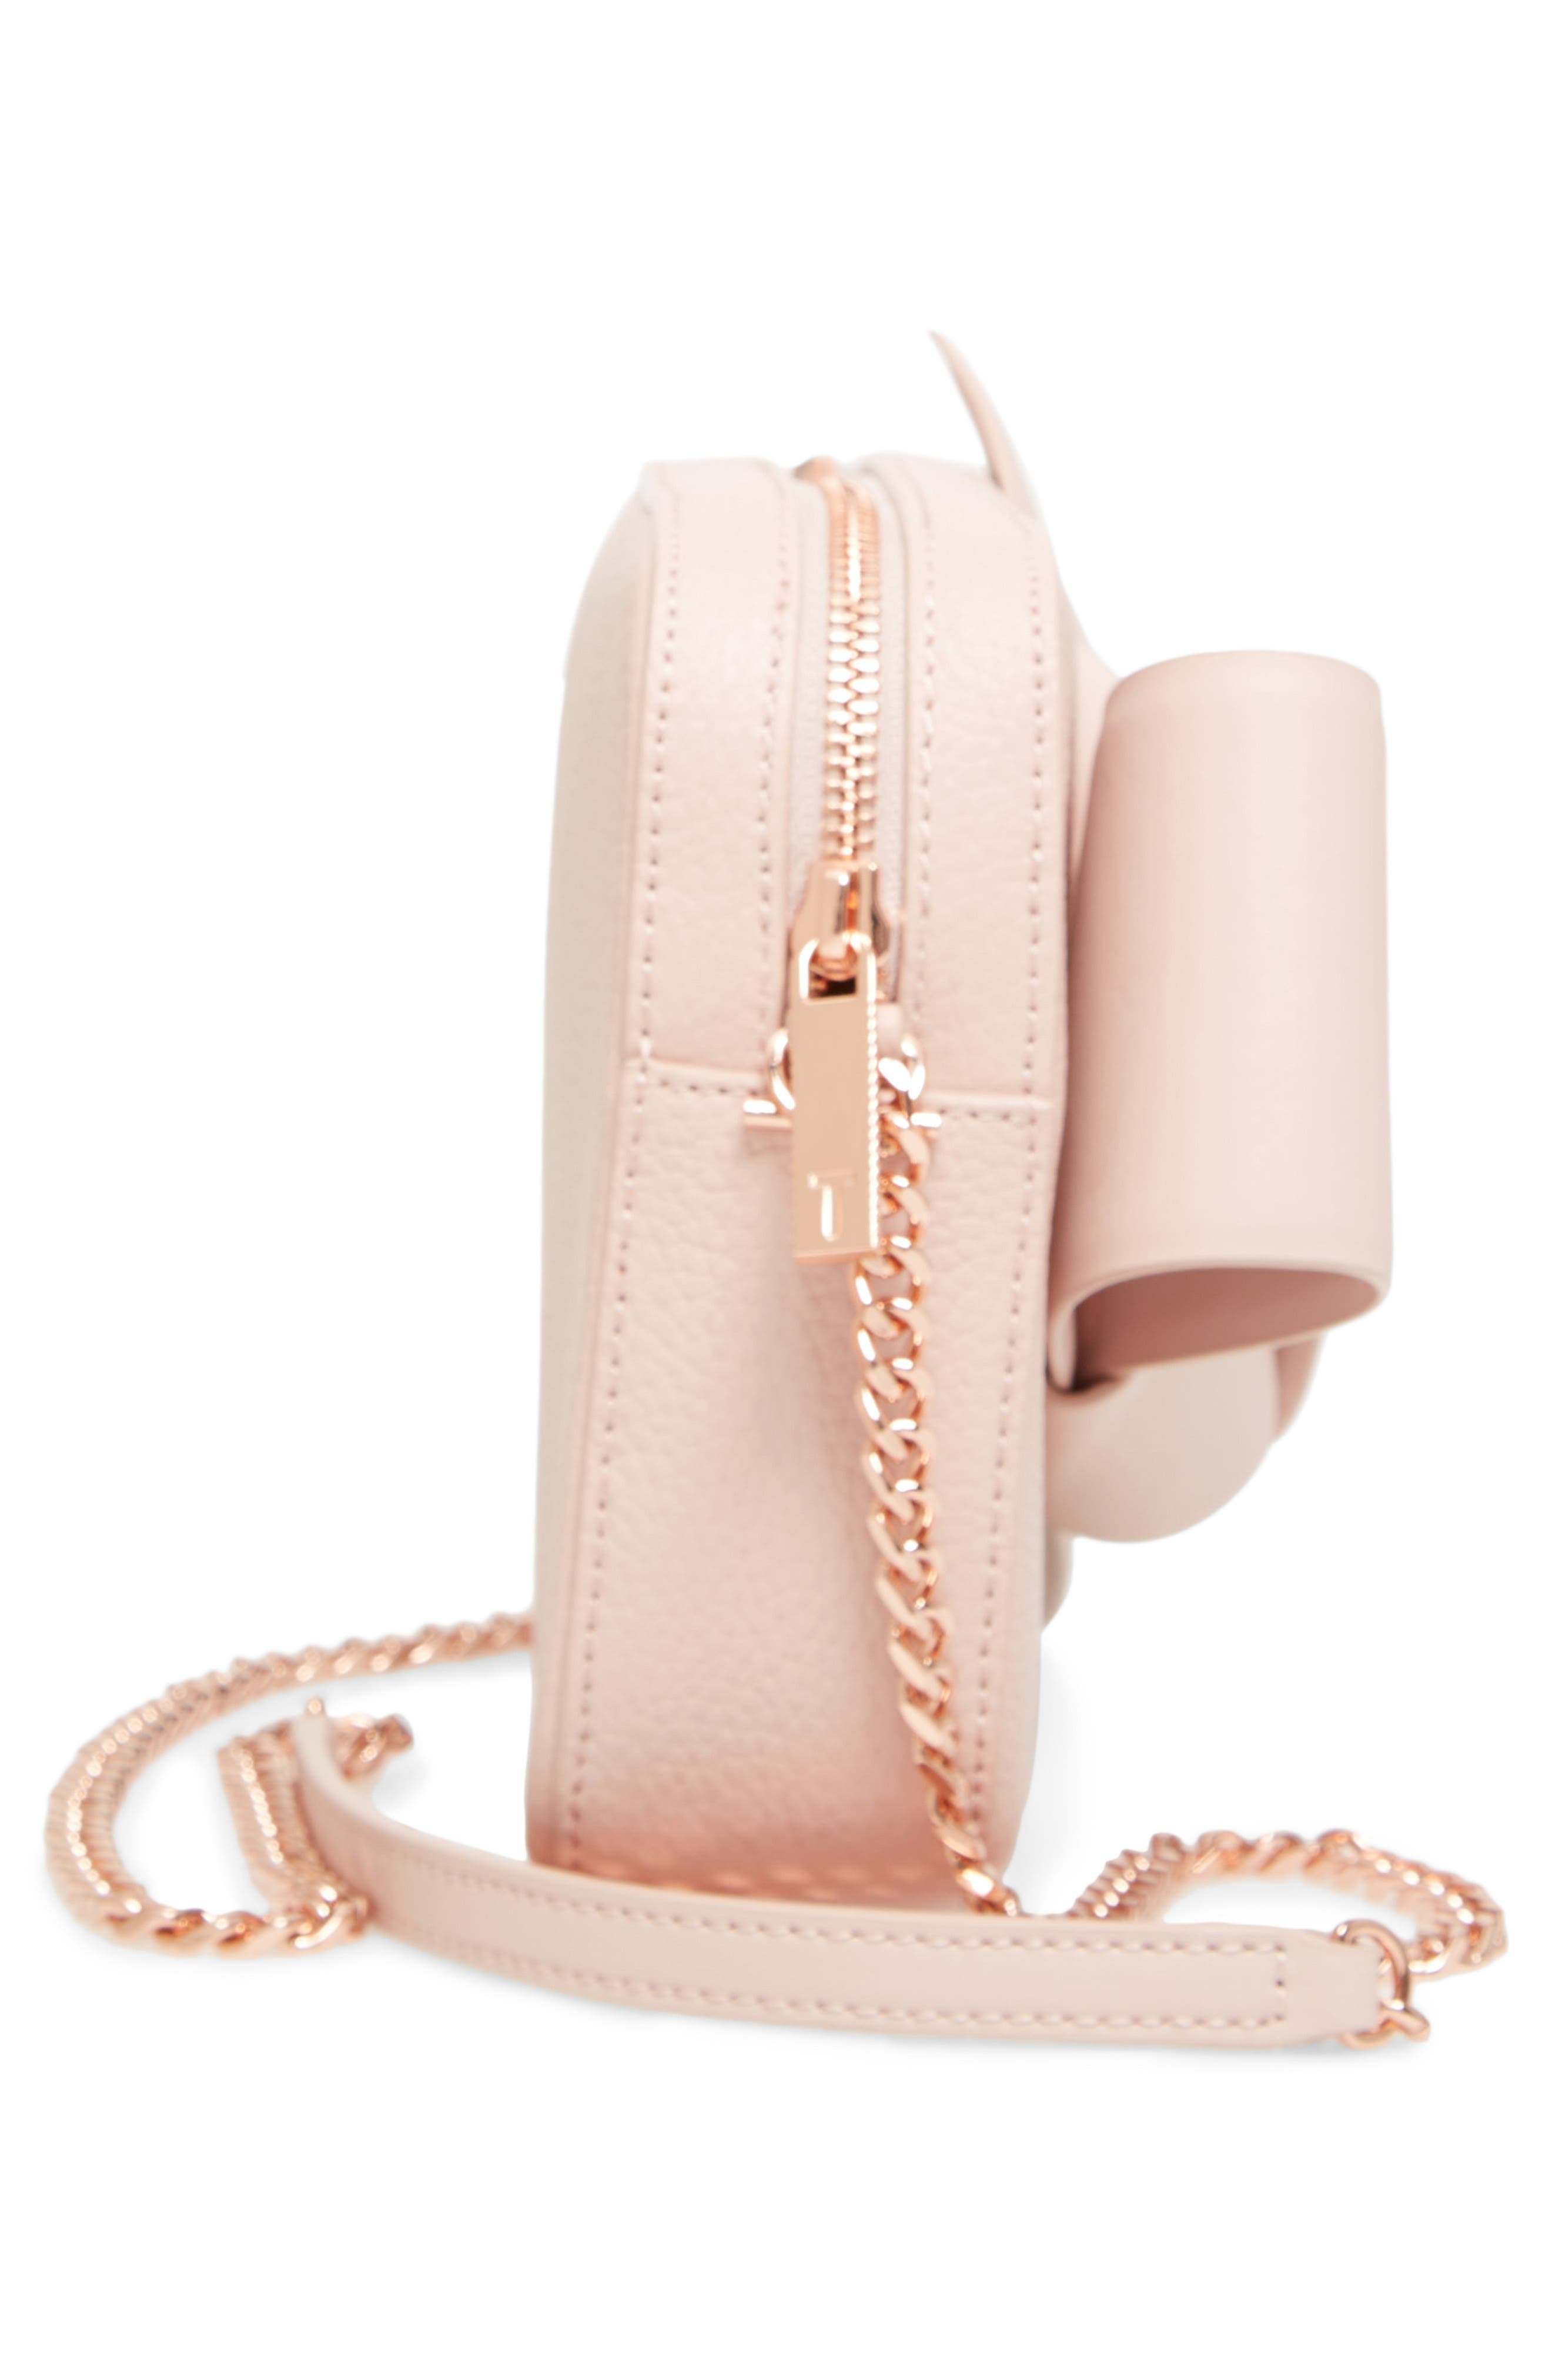 Giant Knot Leather Camera Bag,                             Alternate thumbnail 5, color,                             NUDE PINK